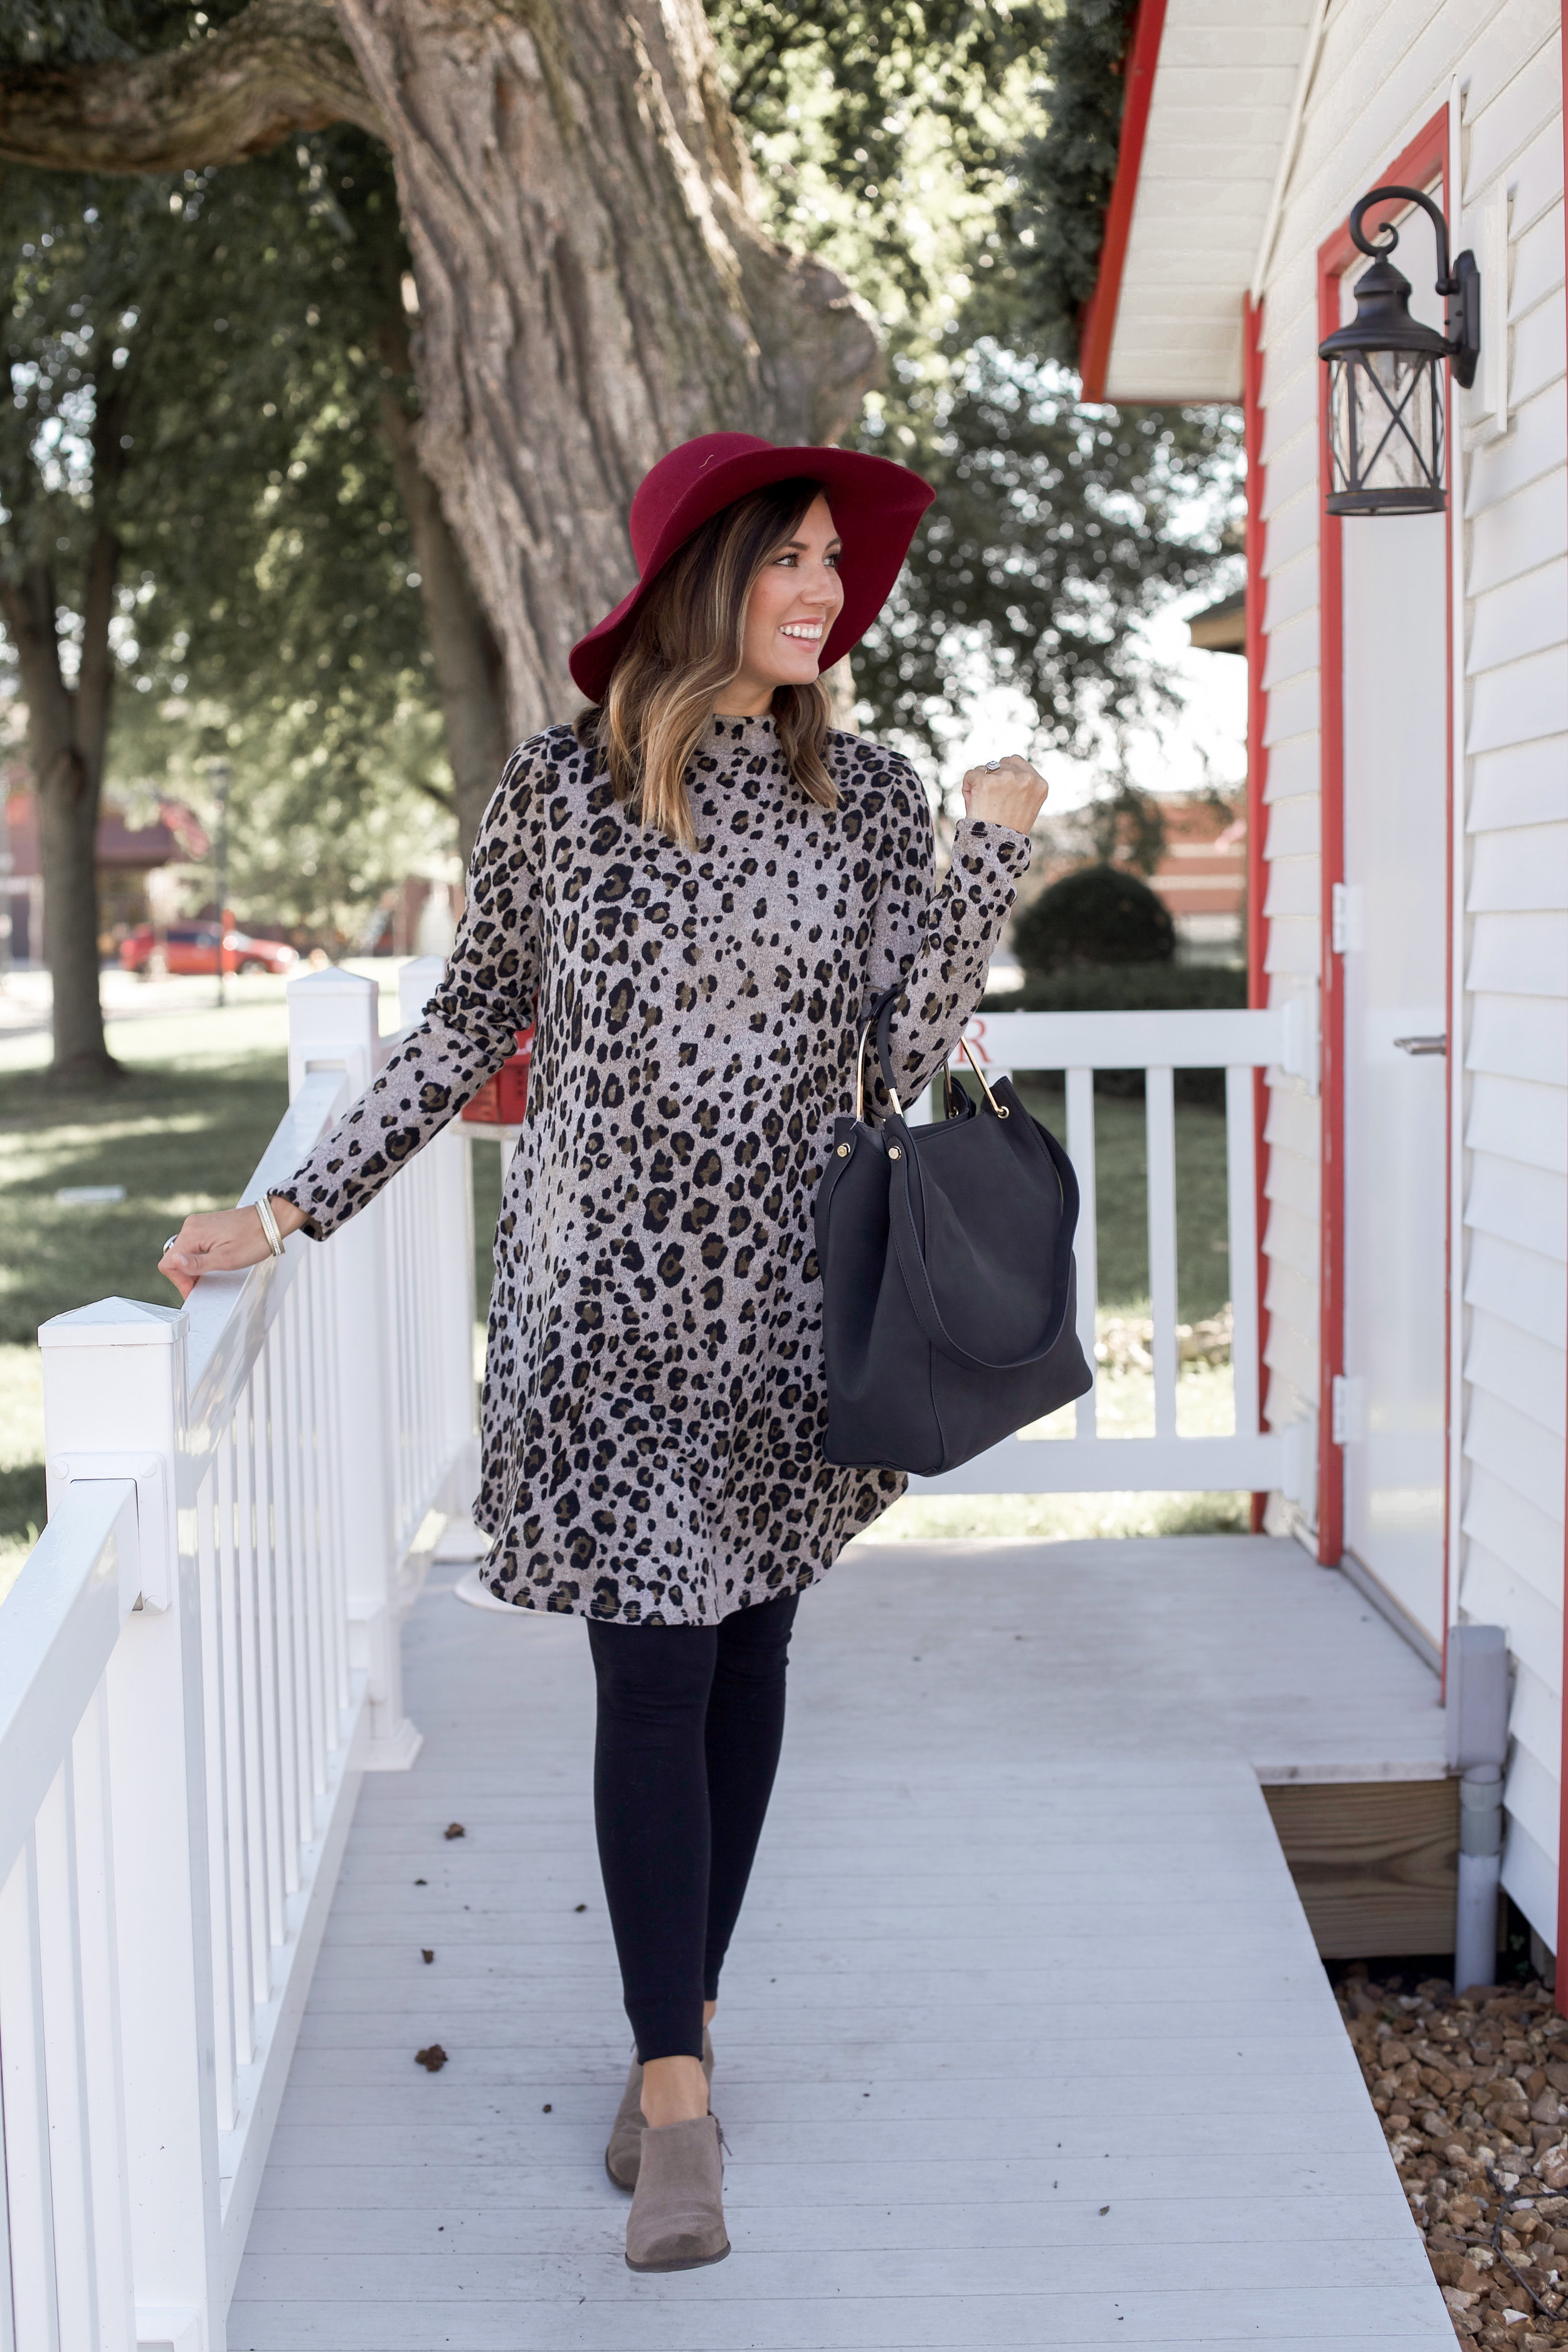 How To Accessorize The Bump